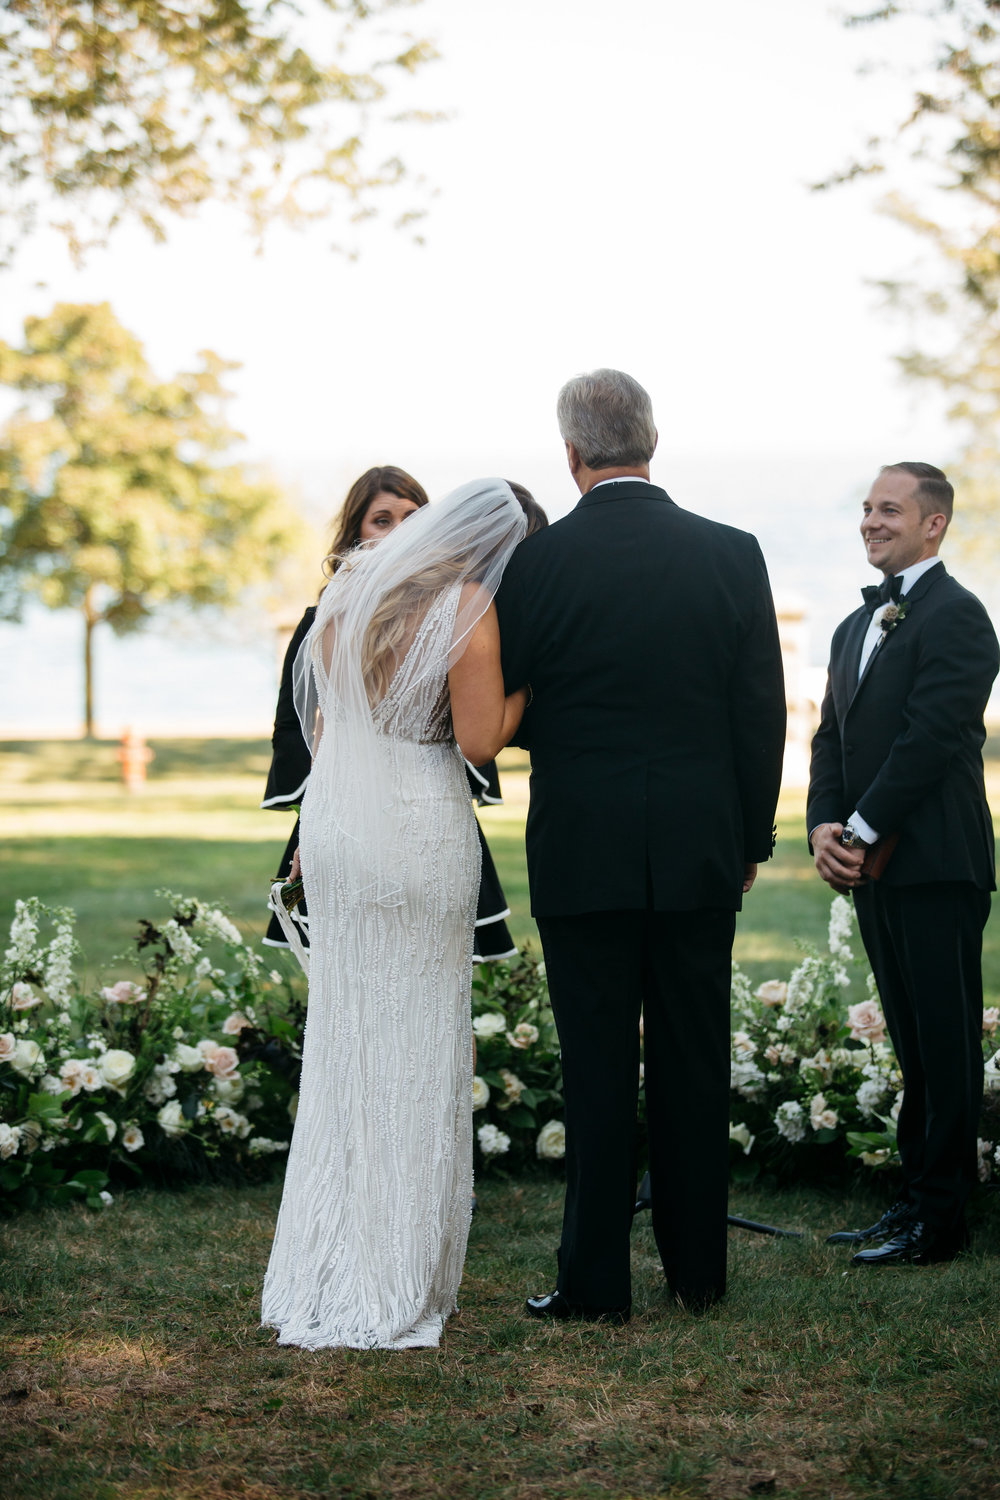 detroit michigan high end wedding planners florals dress outdoor ceremony